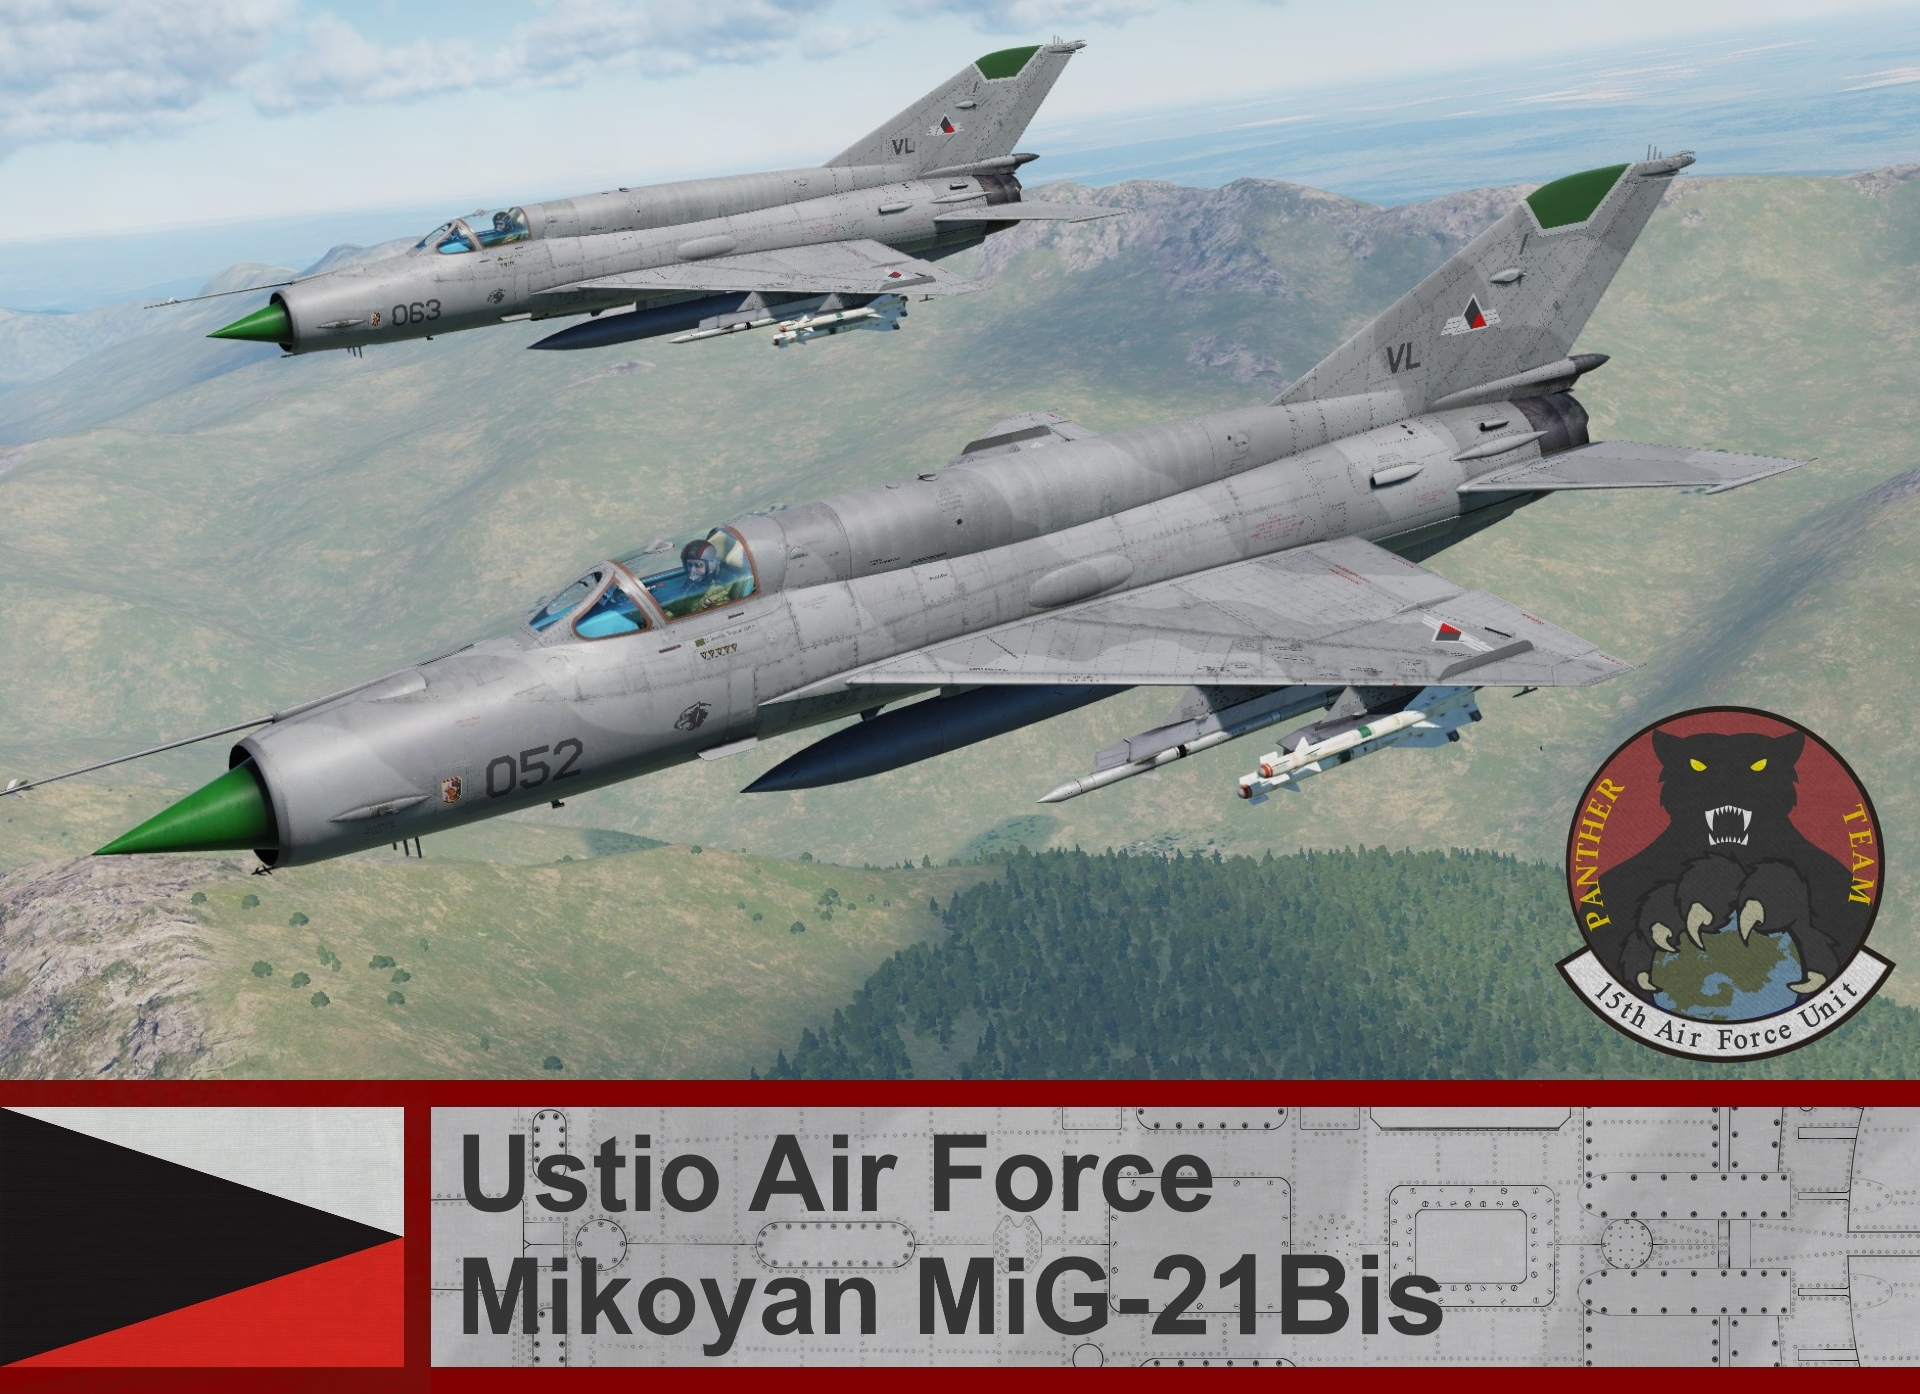 Ustio Air Force Mig-21Bis - Ace Combat Zero (15th AFU) *UPDATED*